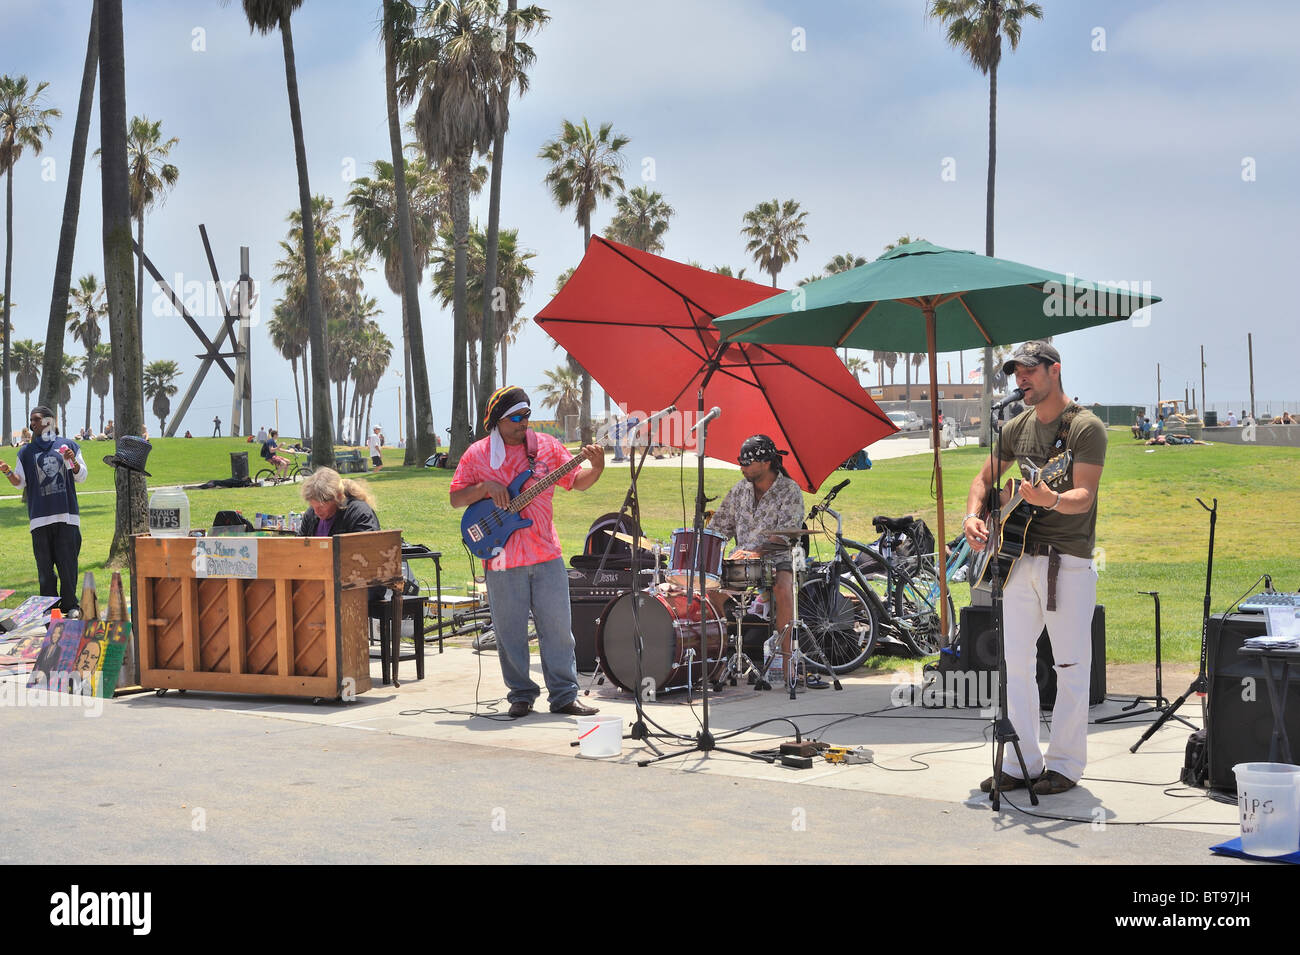 group-of-street-musicians-band-playing-guitar-piano-drums-singing-BT97JH.jpg